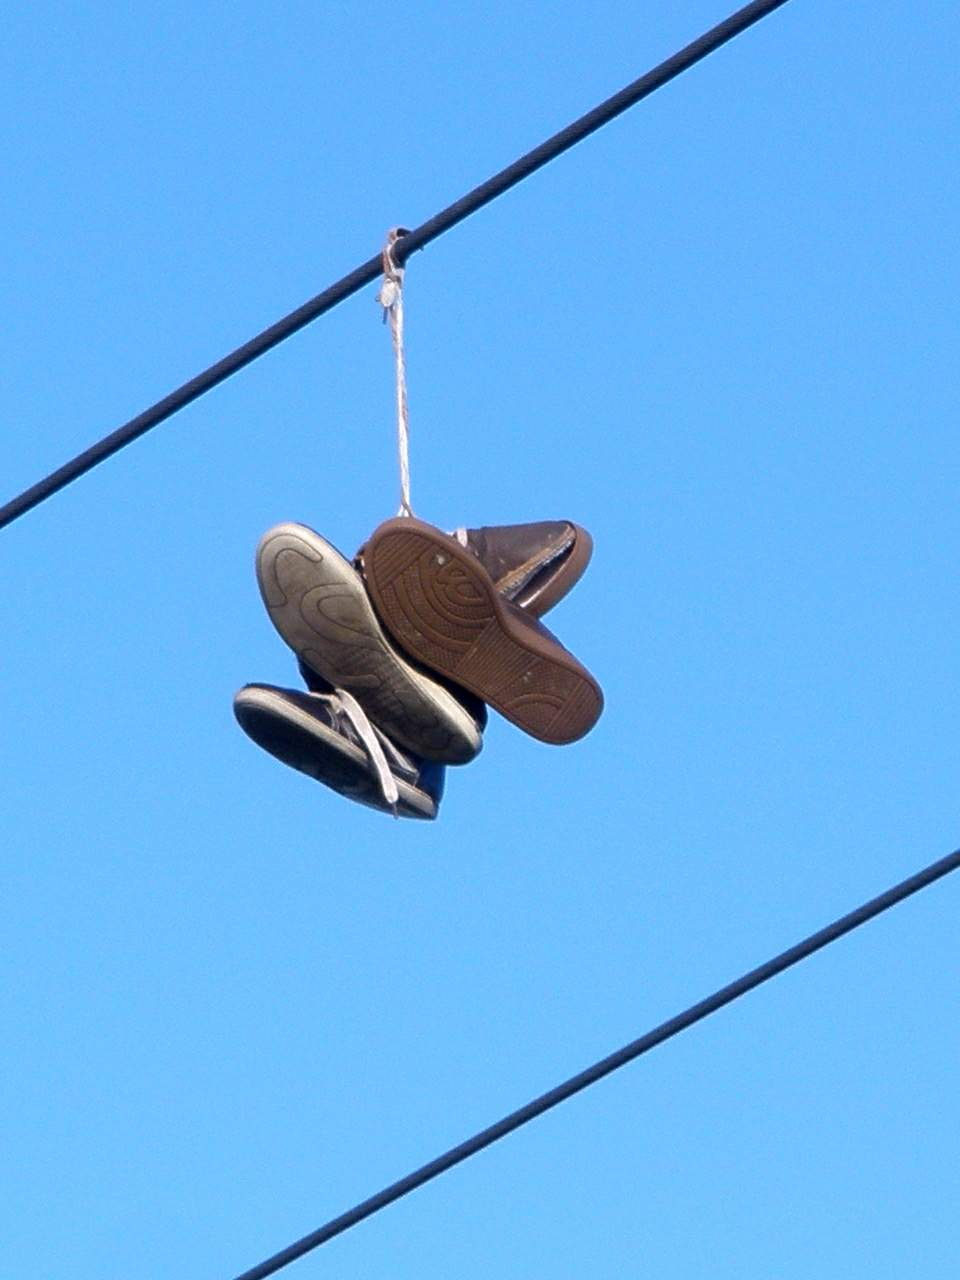 Shoe Tossing Wikipedia Telephone Cable Wiring Nz